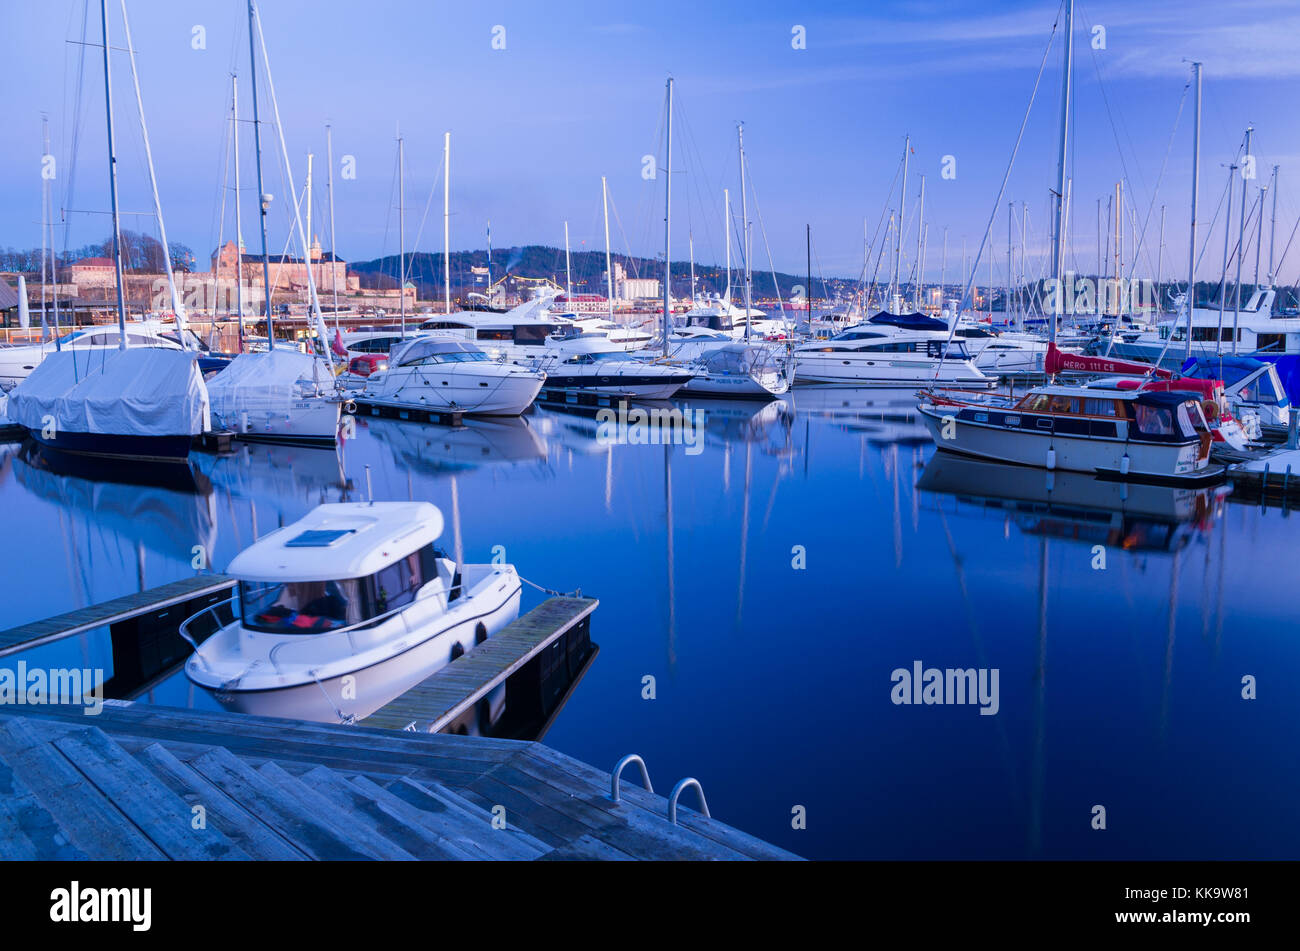 Winter hibernation in Aker Brygge Marina, Oslo, Norway. Sealed yachts are mooring to floating piers, with Akershus - Stock Image